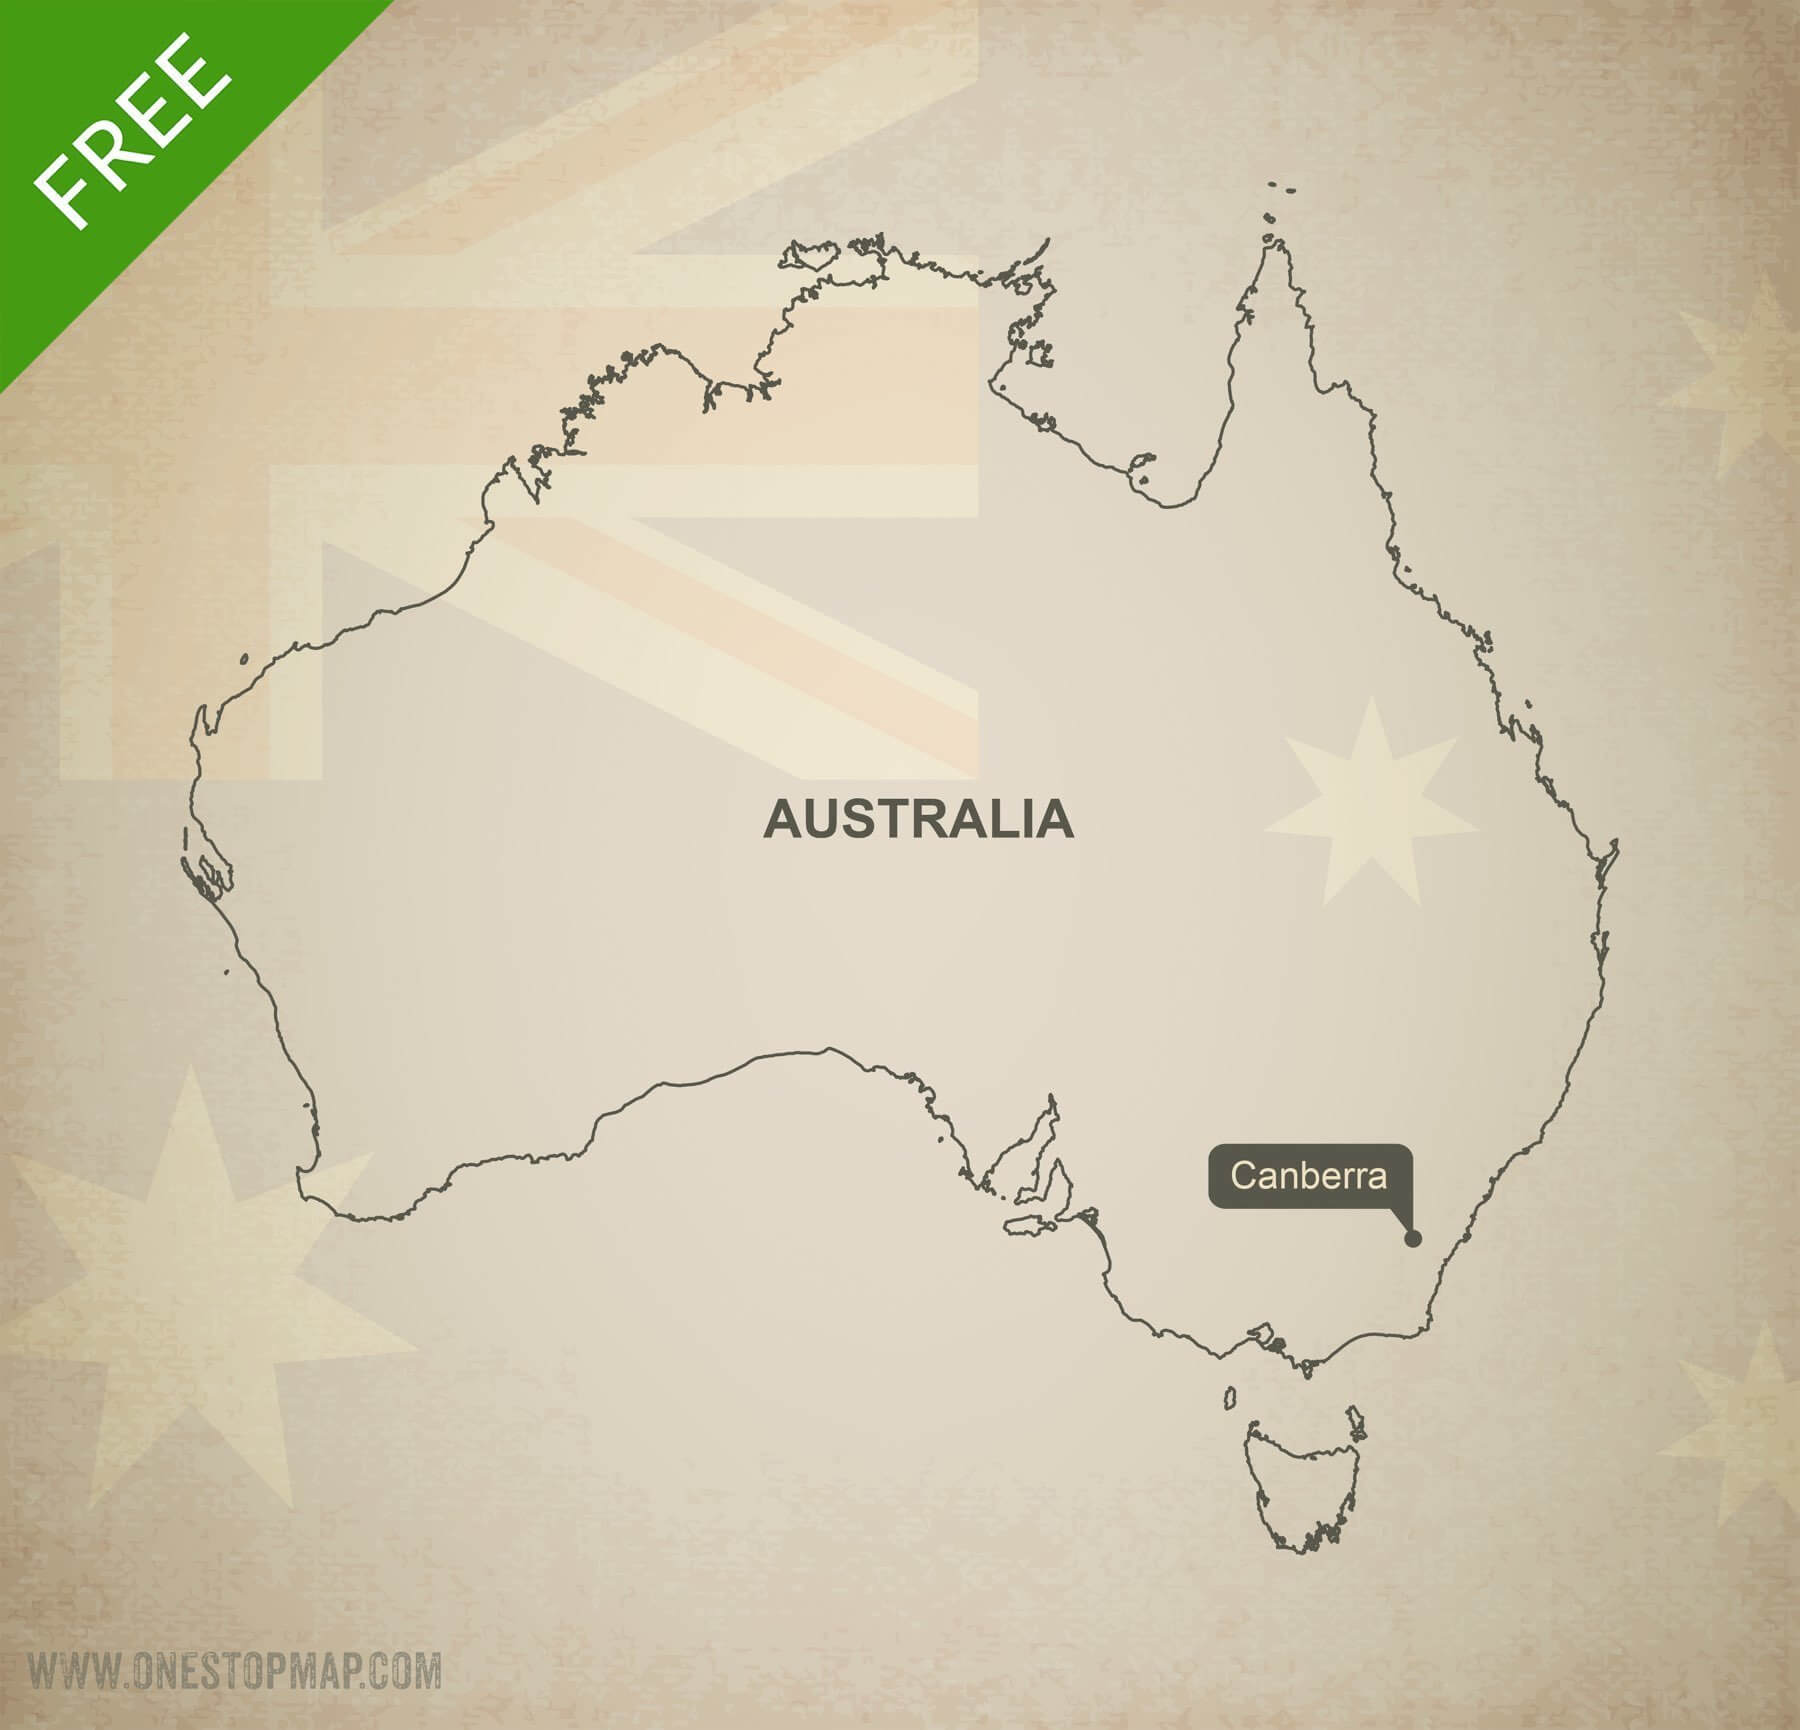 Free Vector Map of Australia Outline   One Stop Map Map of Australia outline